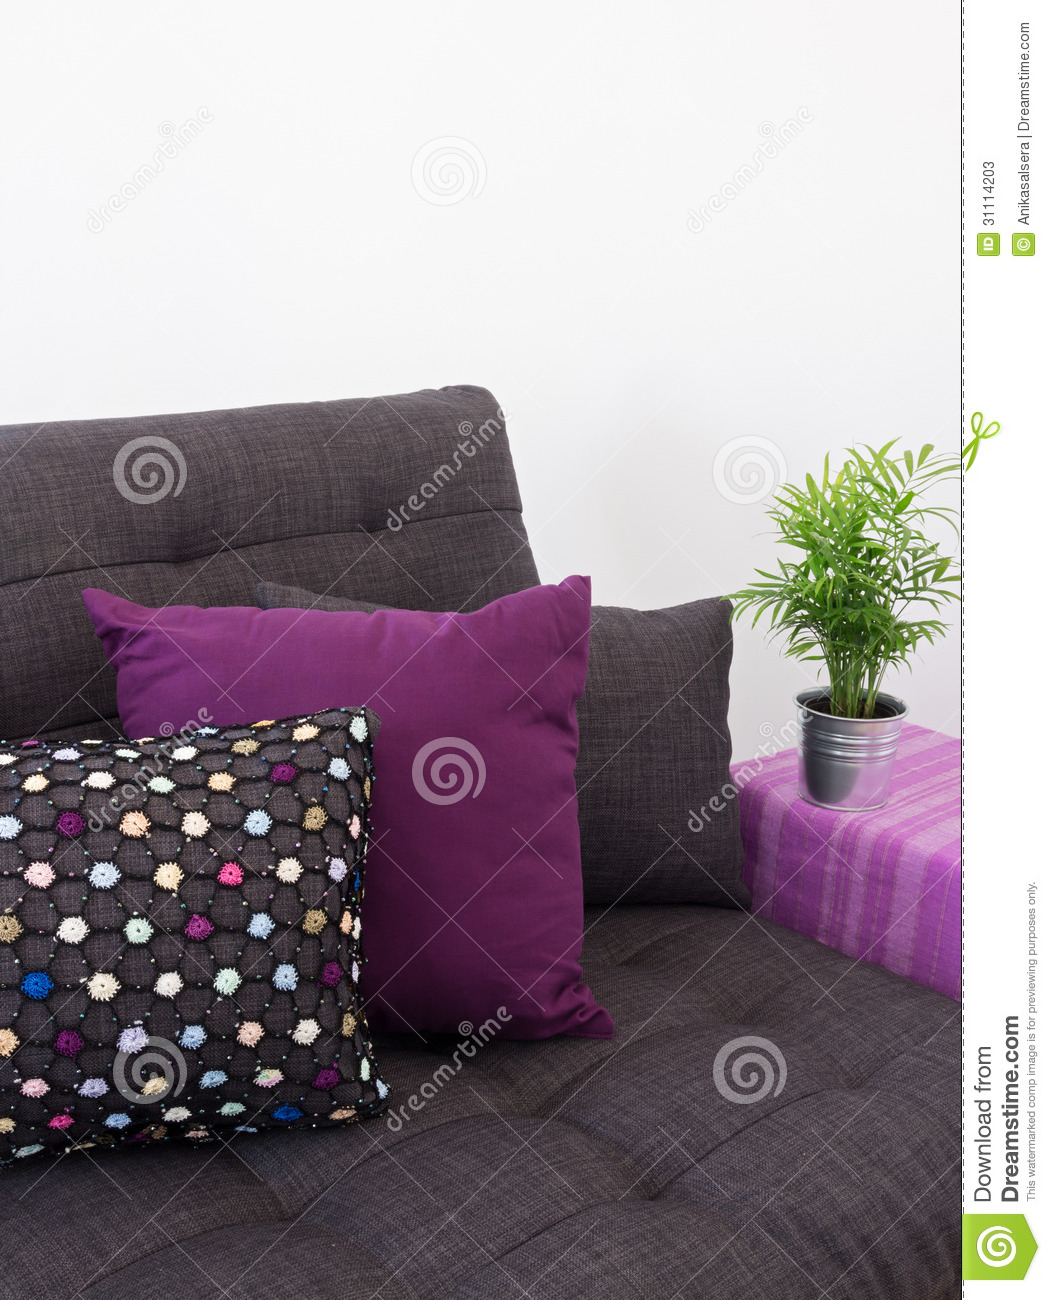 Sofa with colorful cushions and green plant stock photos for Sofa table for plants